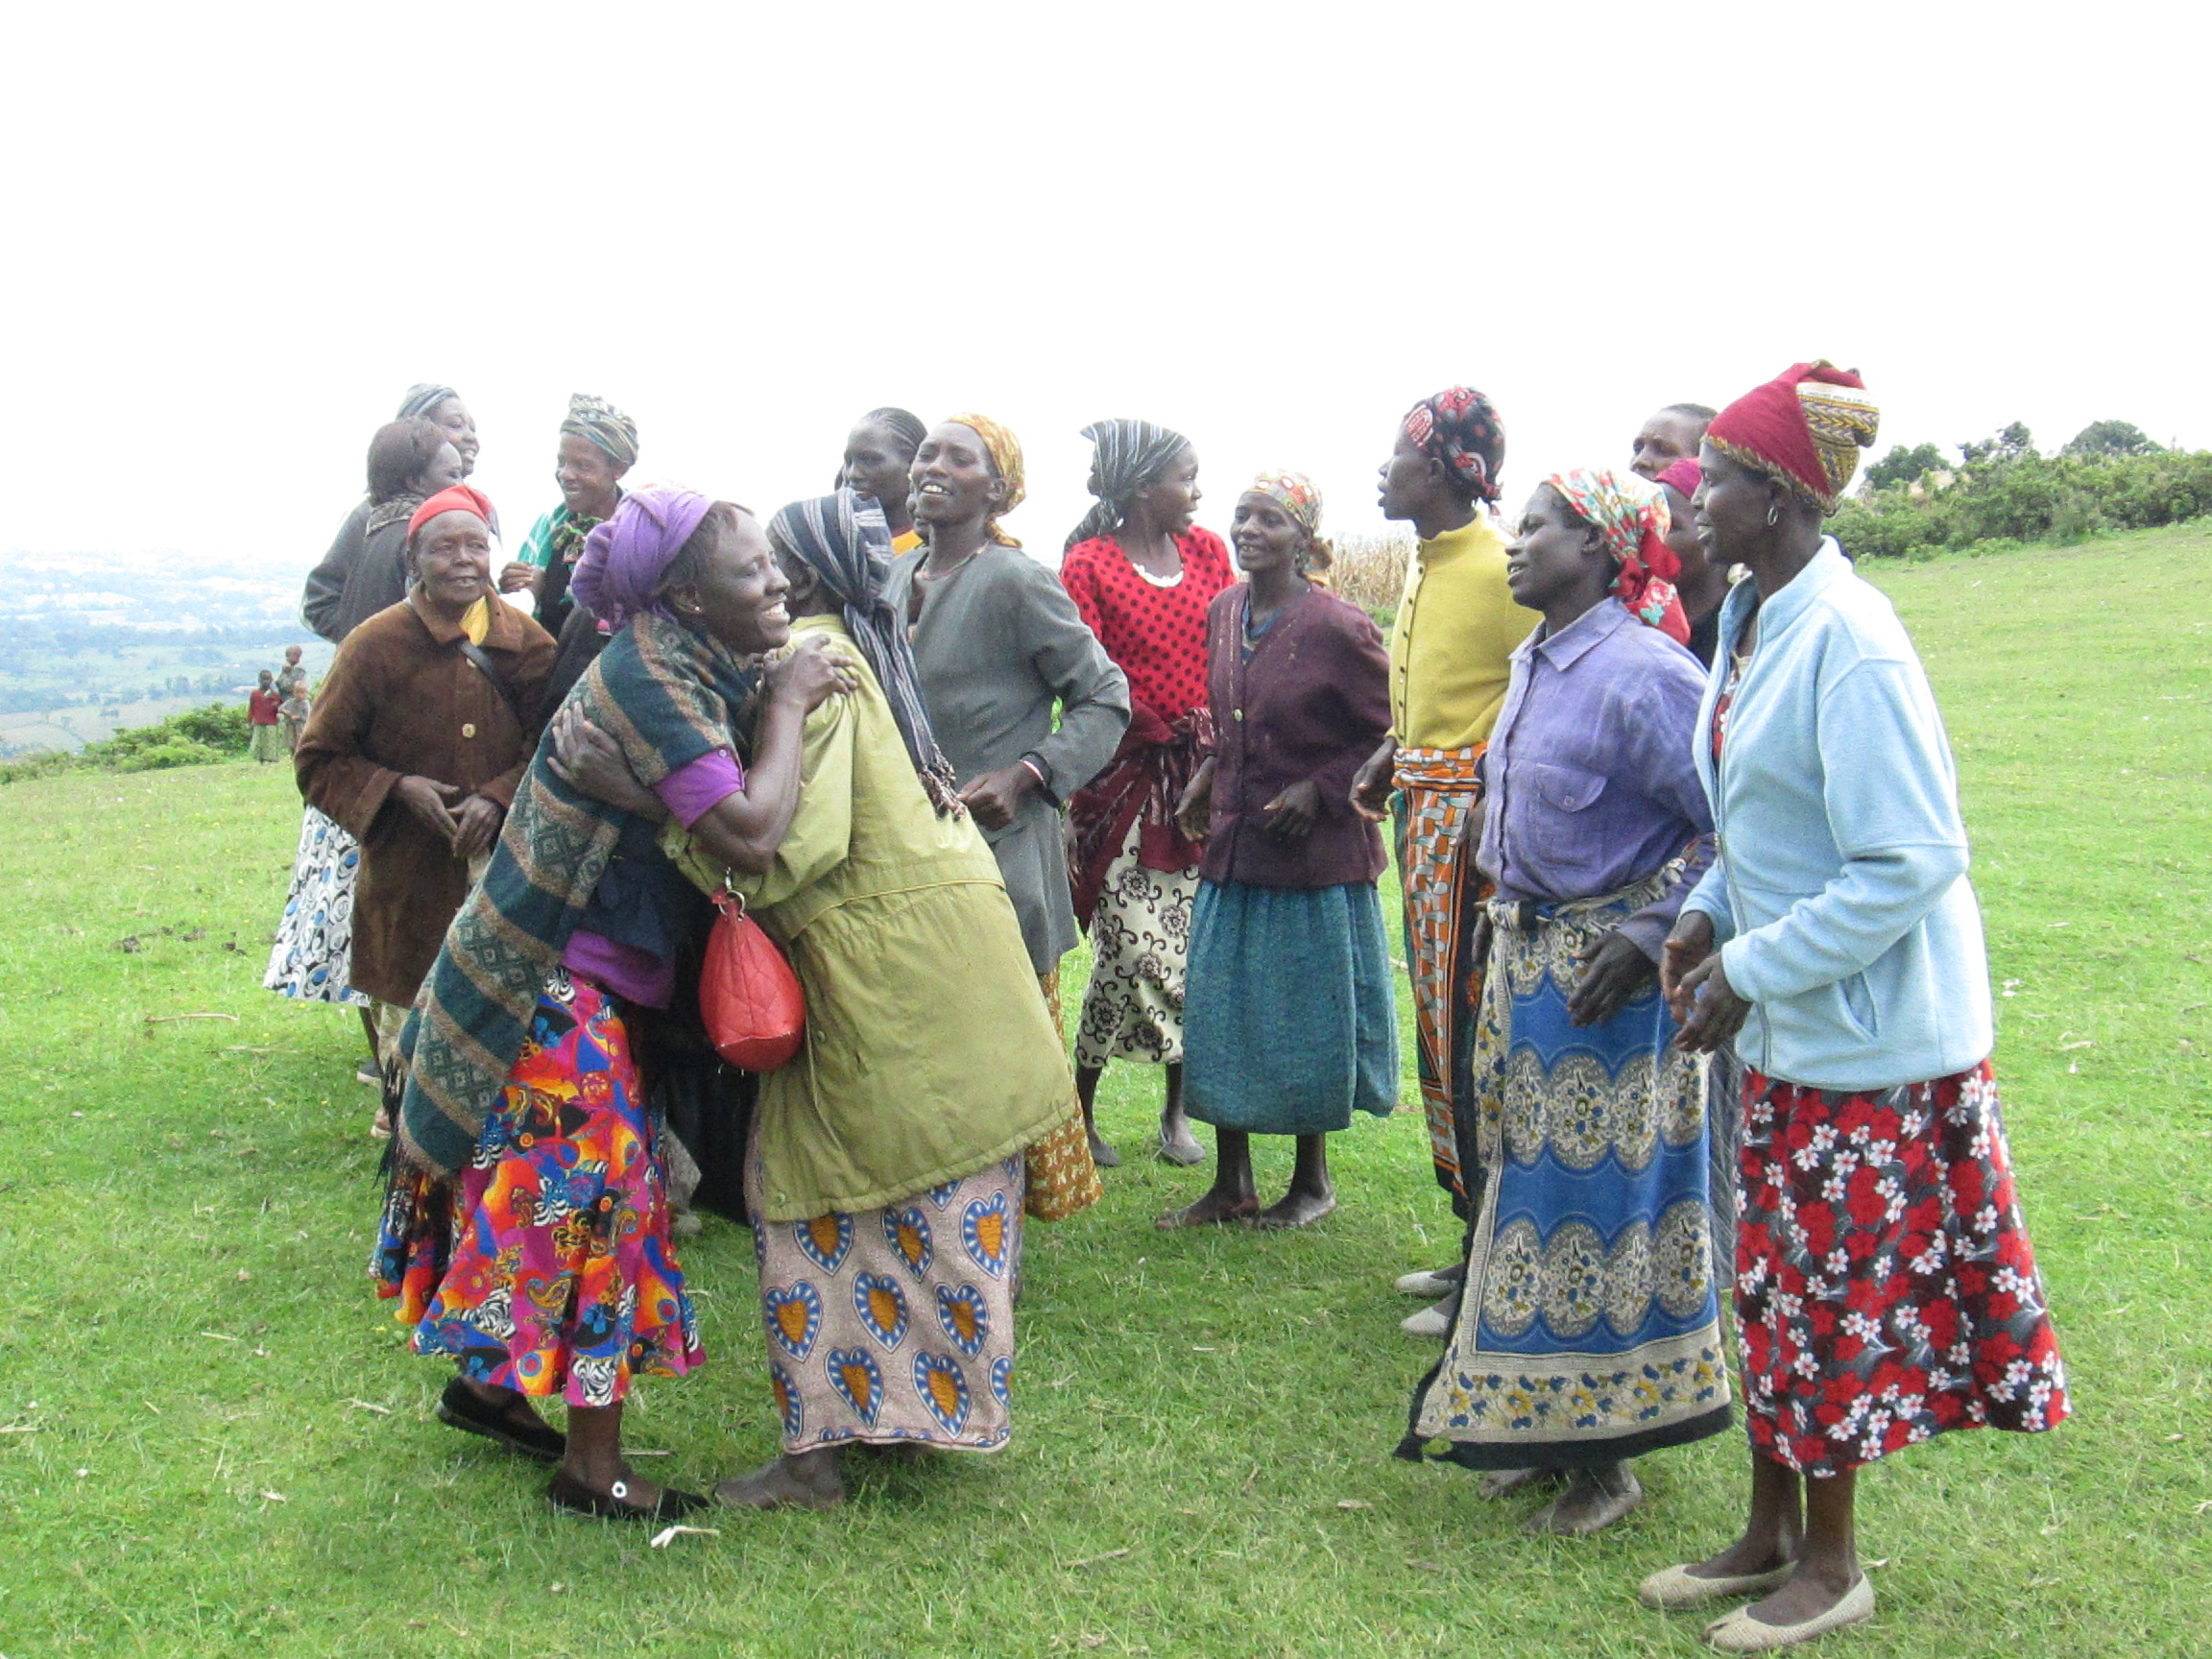 The women broke into song and dance after all was done.